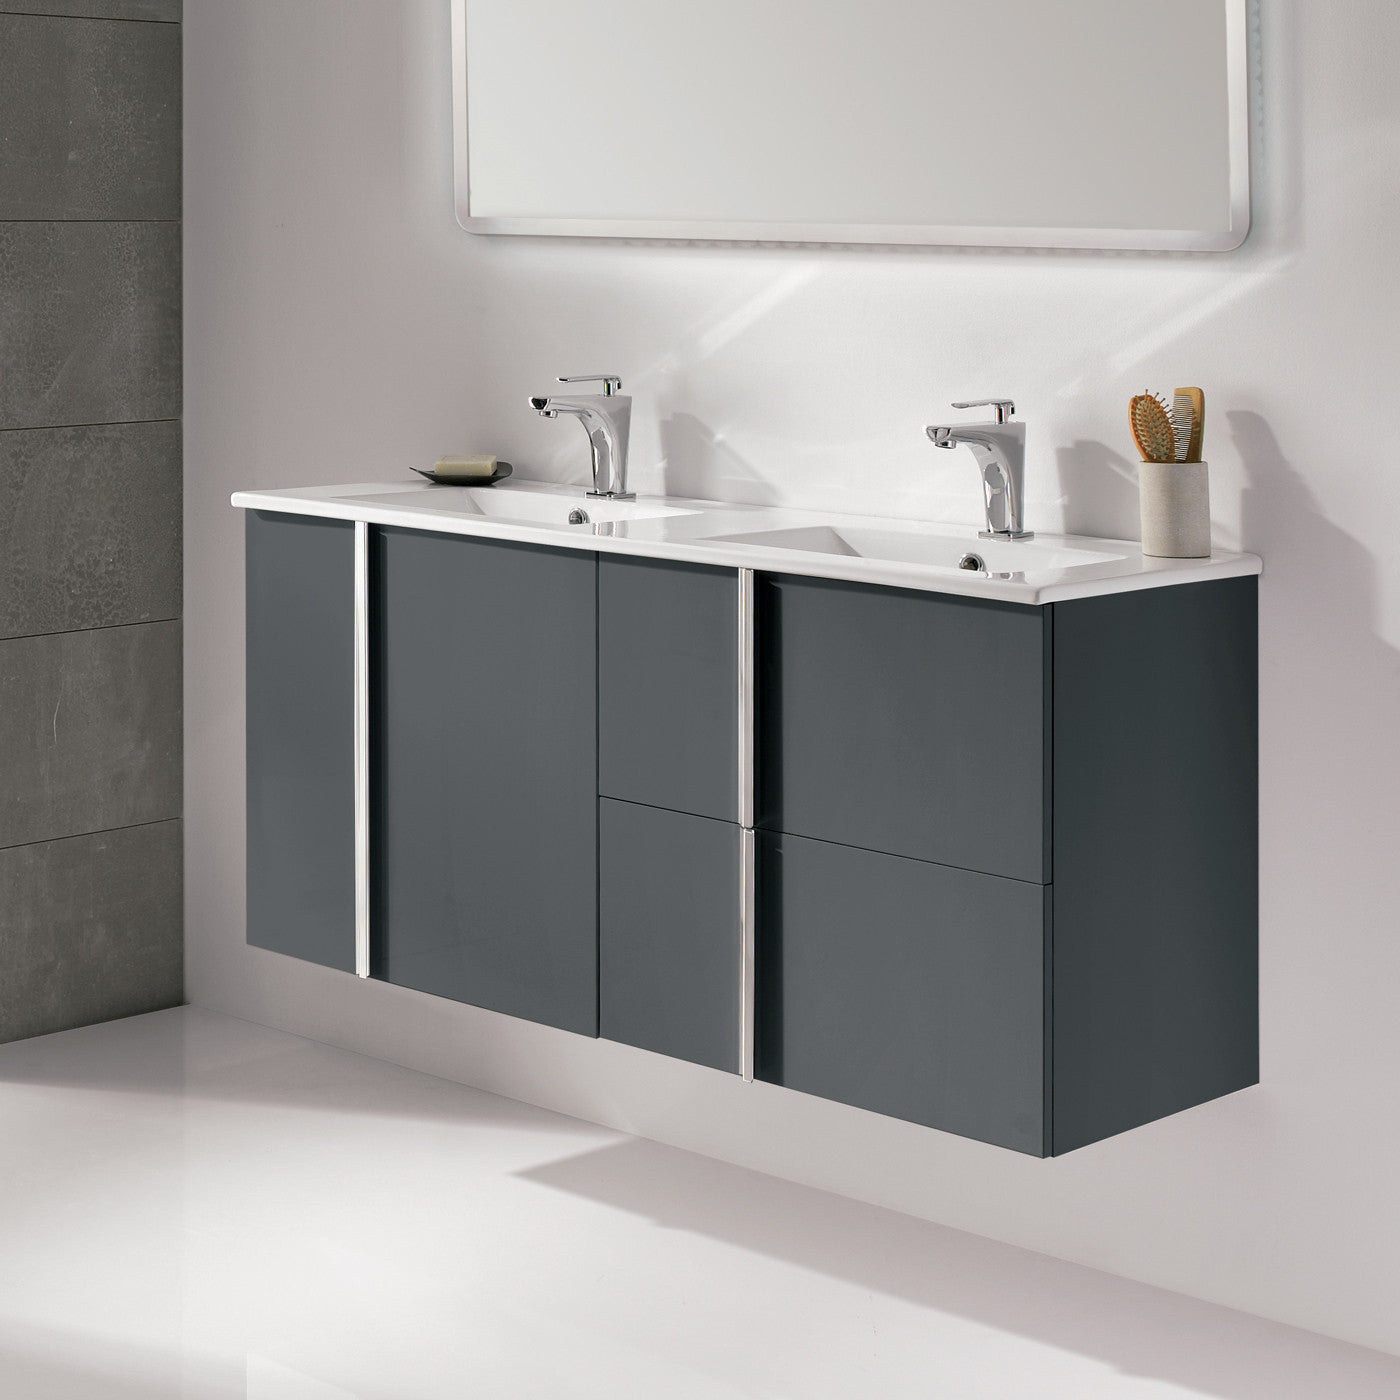 Royo Onix Vanity Wall Hung Cabinet And Double Sink 48